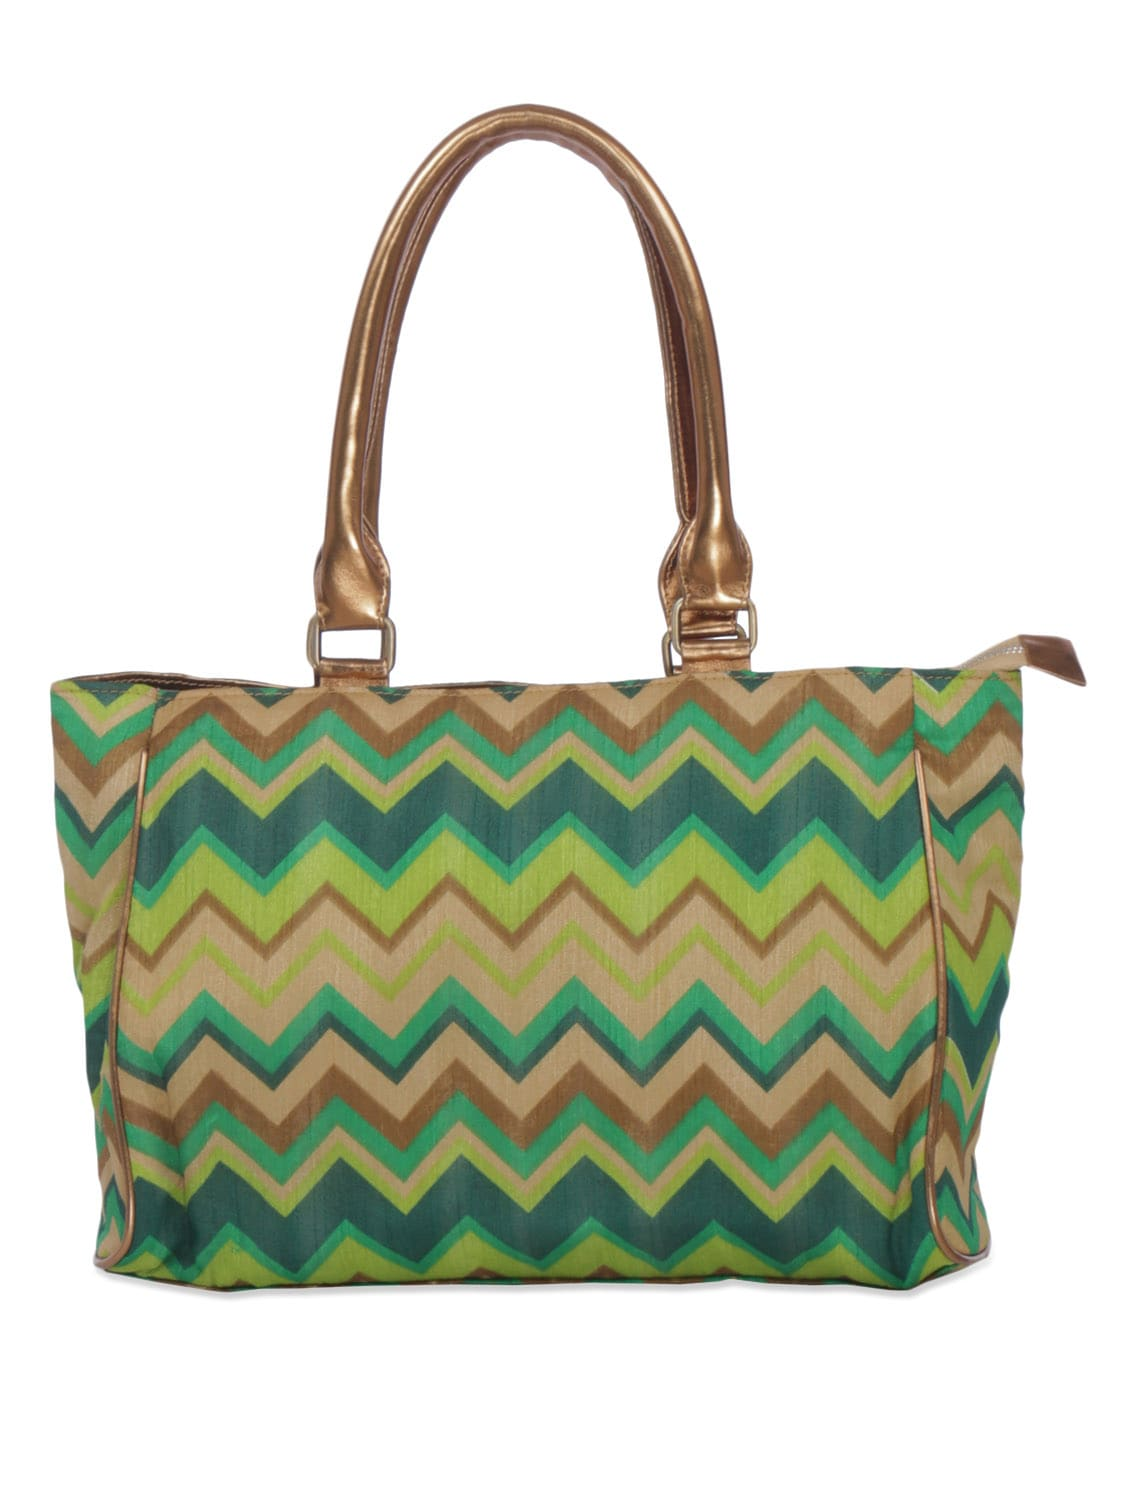 ... multicolored chevron cotton silk and faux leather handbag - 1329977 -  Zoom Image - 1 971cba0c206e9